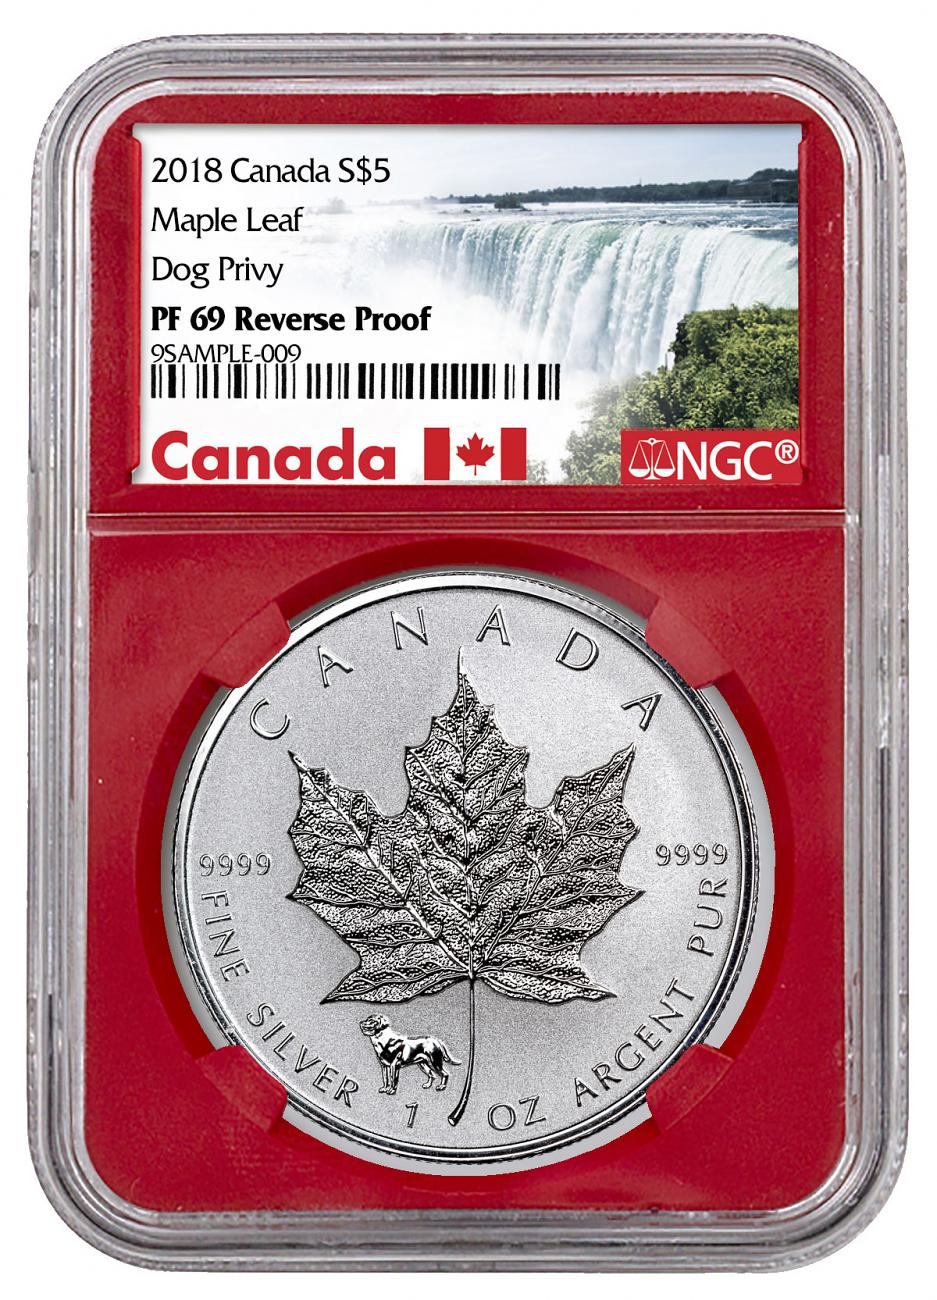 2018 Canada 1 oz Silver Maple Leaf - Dog Privy Reverse Proof $5 Coin NGC PF69 Red Core Holder Exclusive Canada Label